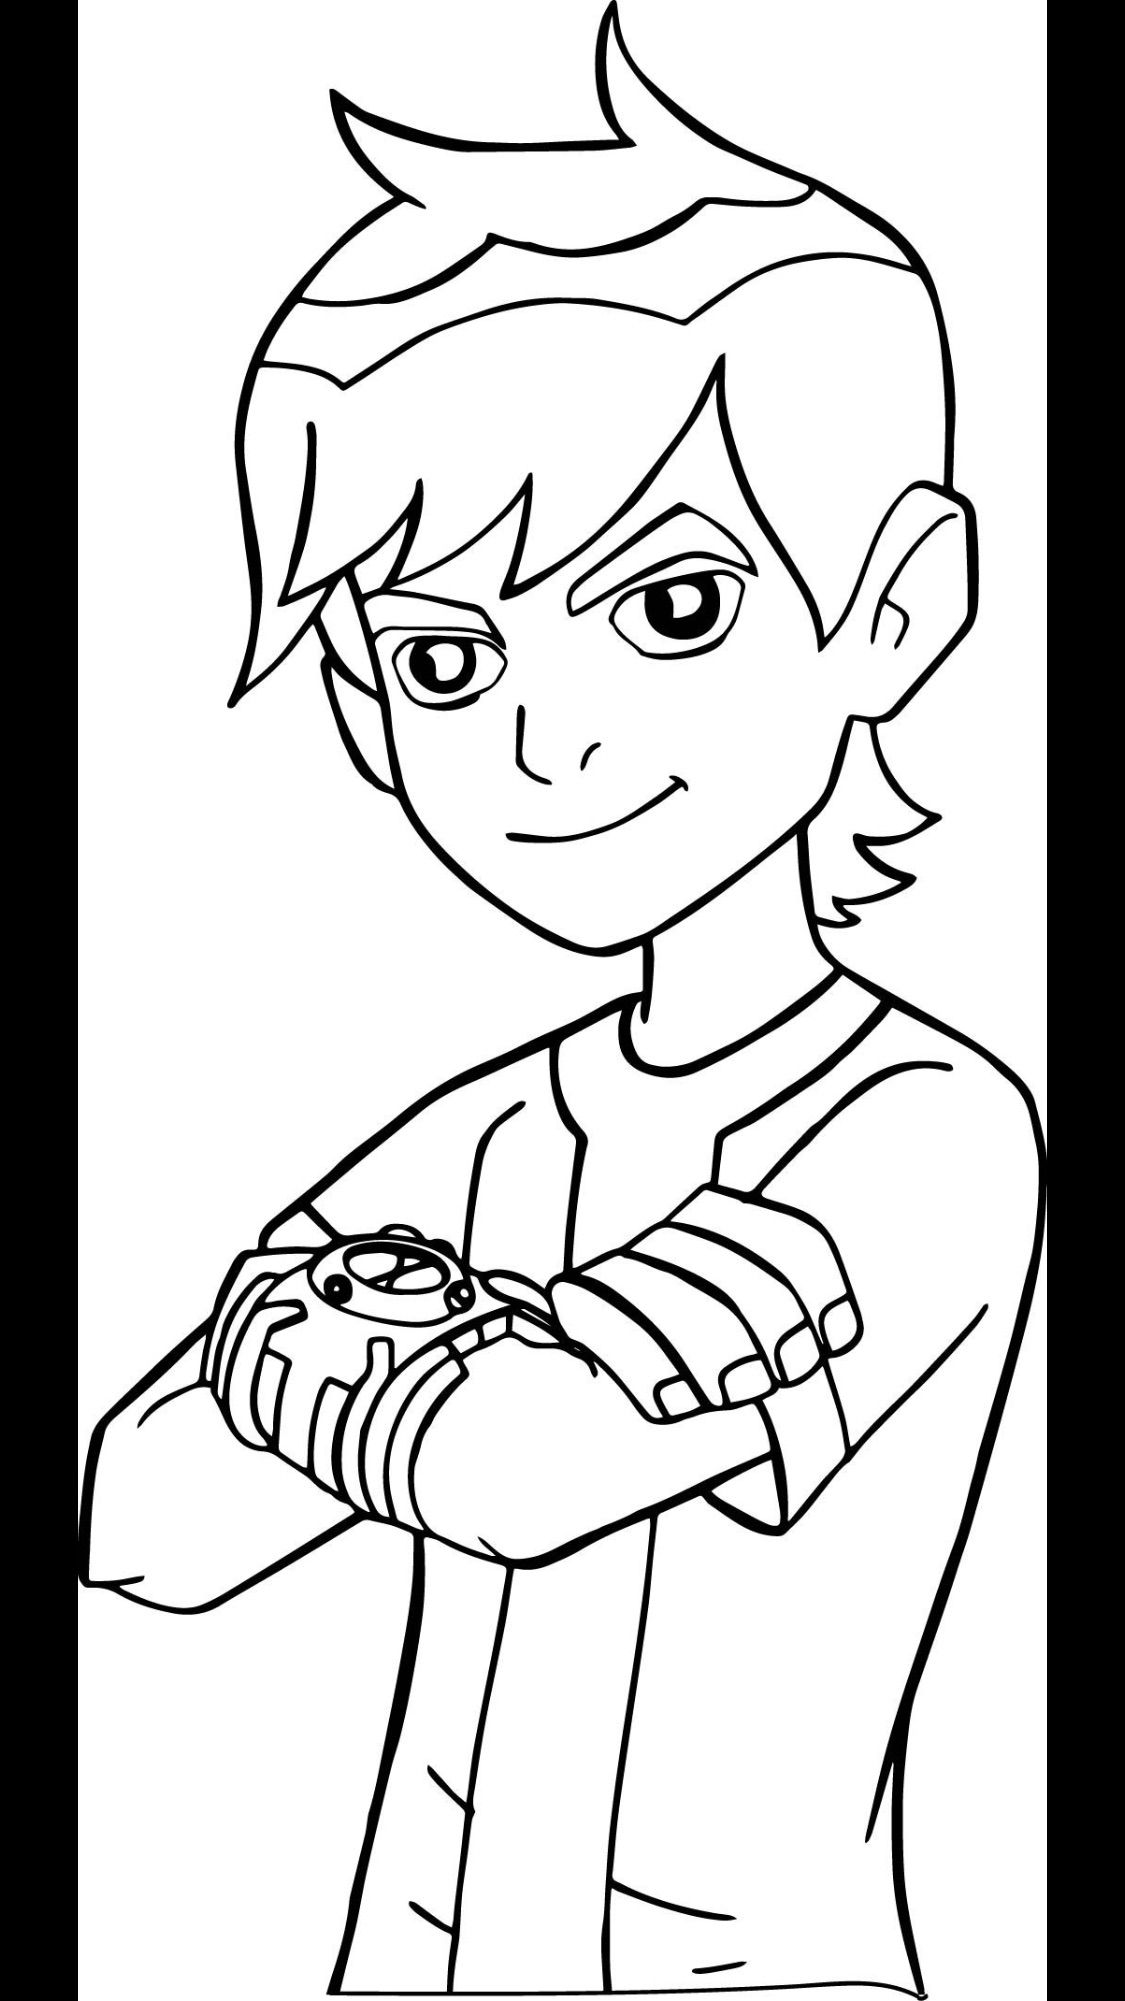 Pin By Kyle Giggles On Ben 10 Coloring Pages Alien Drawings Coloring Sheets